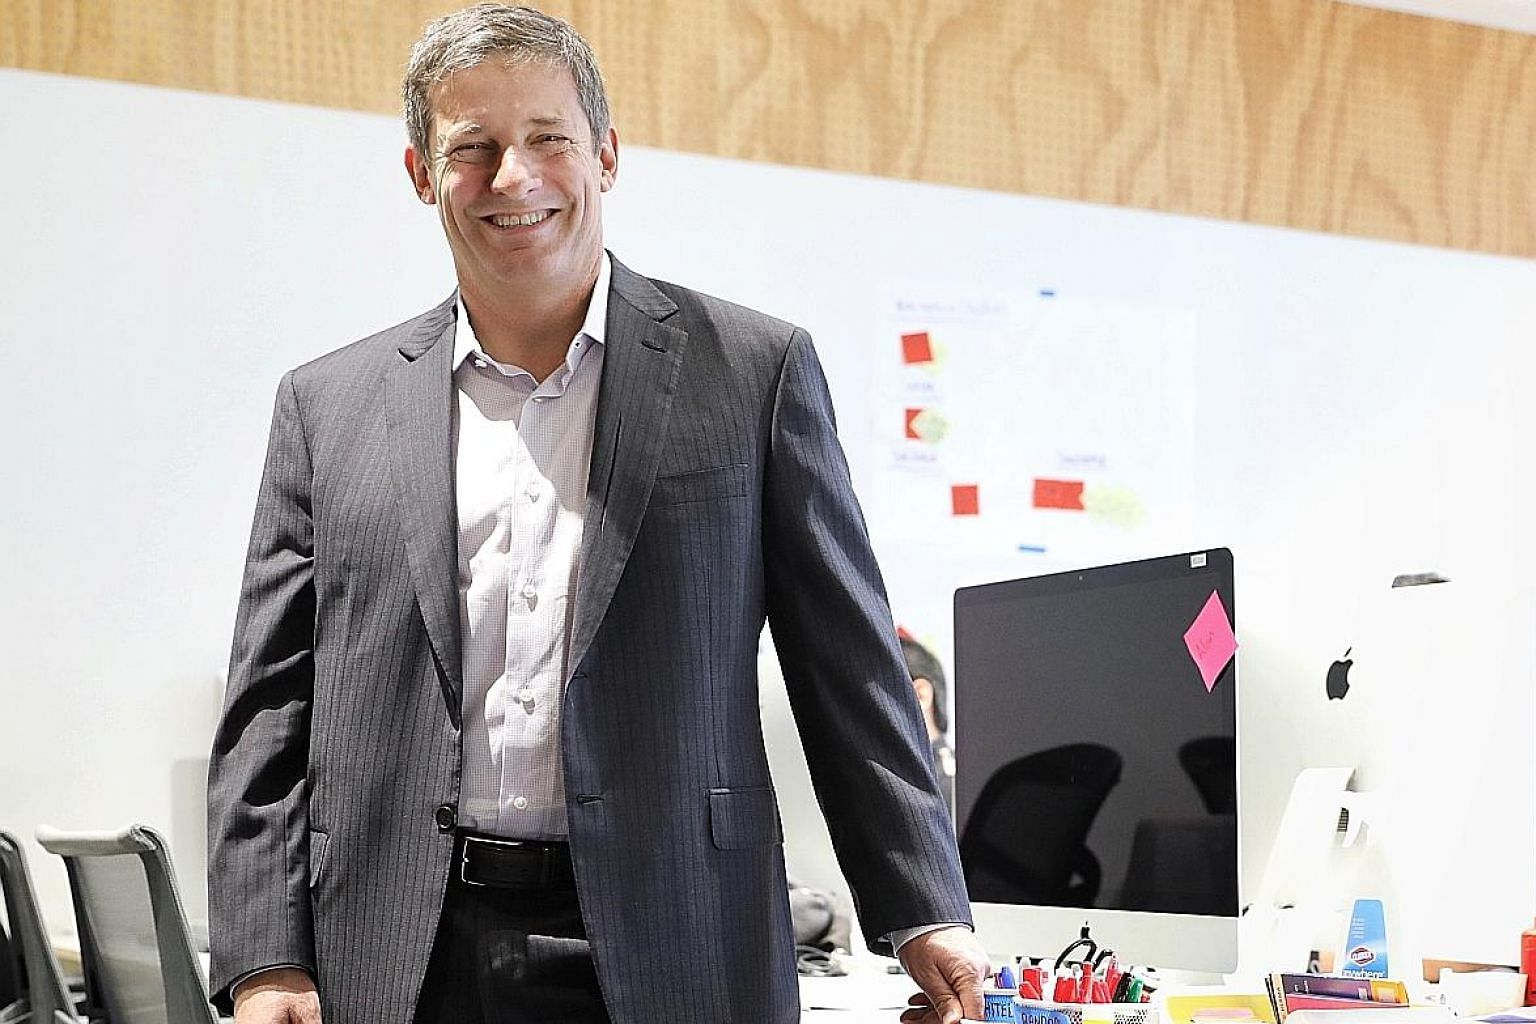 Pivotal CEO Rob Mee at the Robinson Road office. As in the US, staff in Singapore, after a free breakfast, gather for a meeting at 9.06am every day where ideas are tossed around and someone brings up an interesting thing he has learnt about. 9.06 was